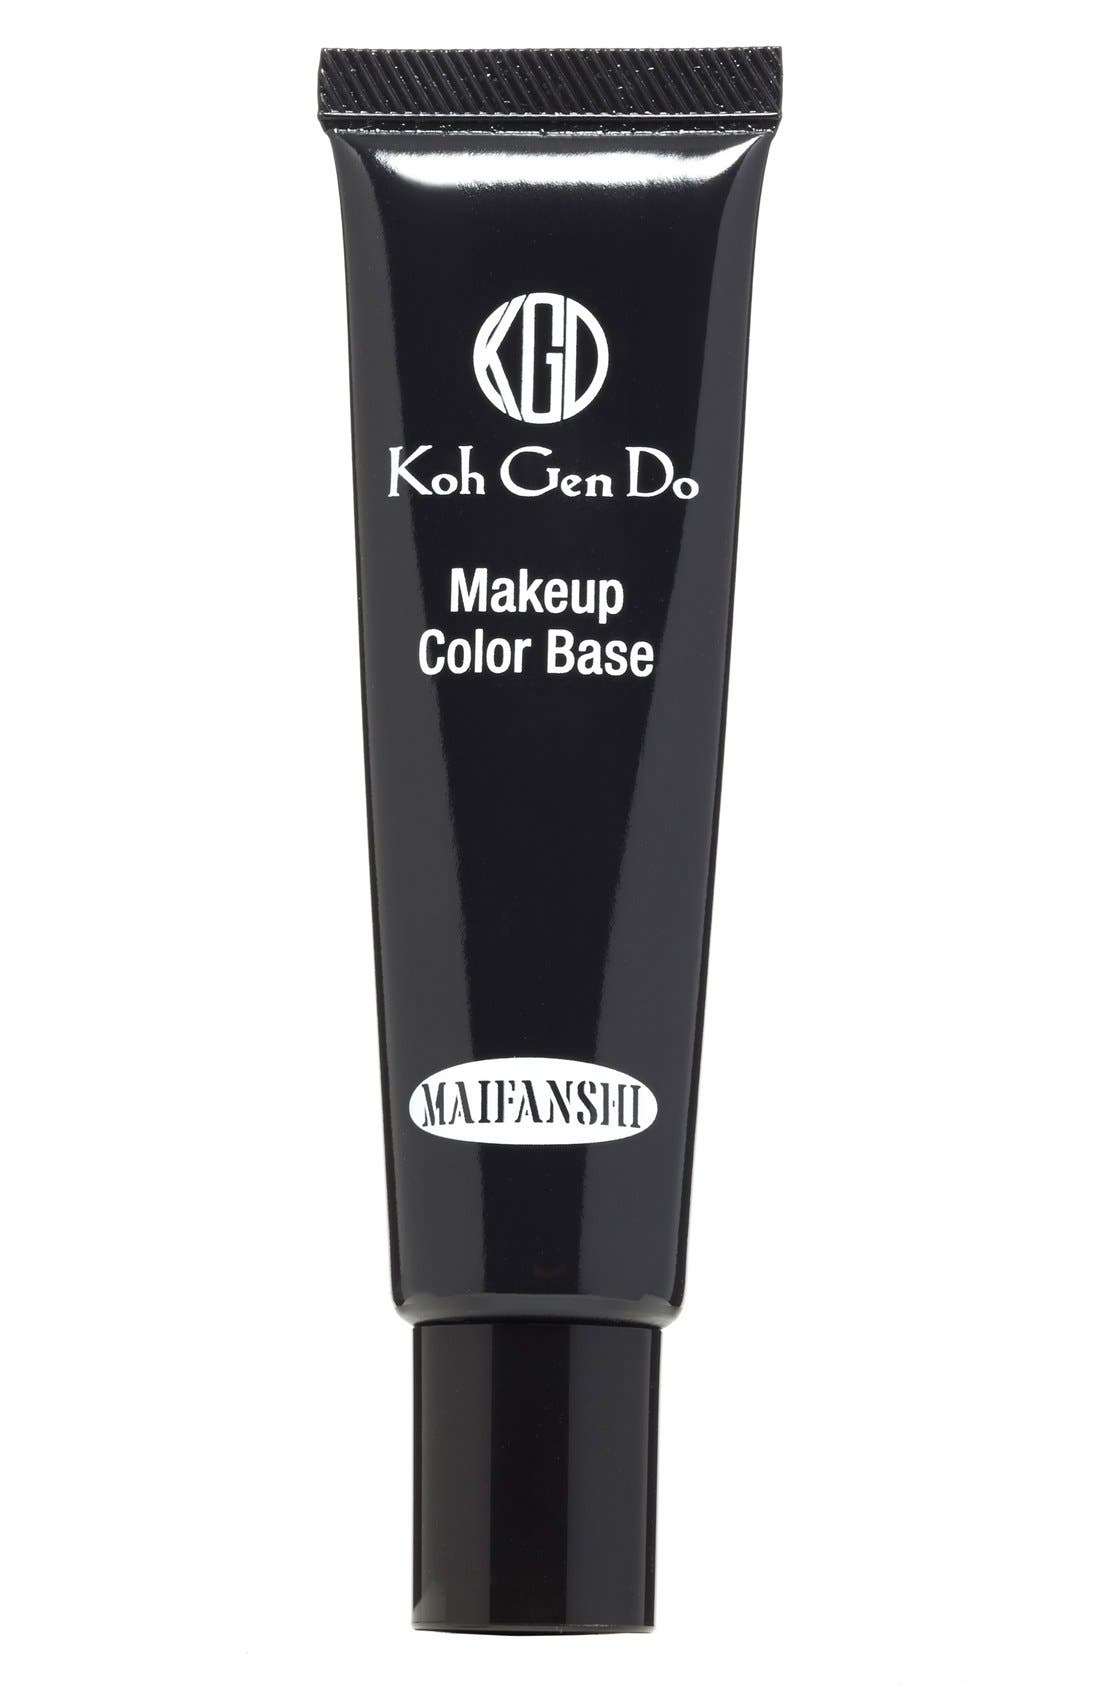 Koh Gen Do 'Maifanshi - Pearl White' Makeup Color Base